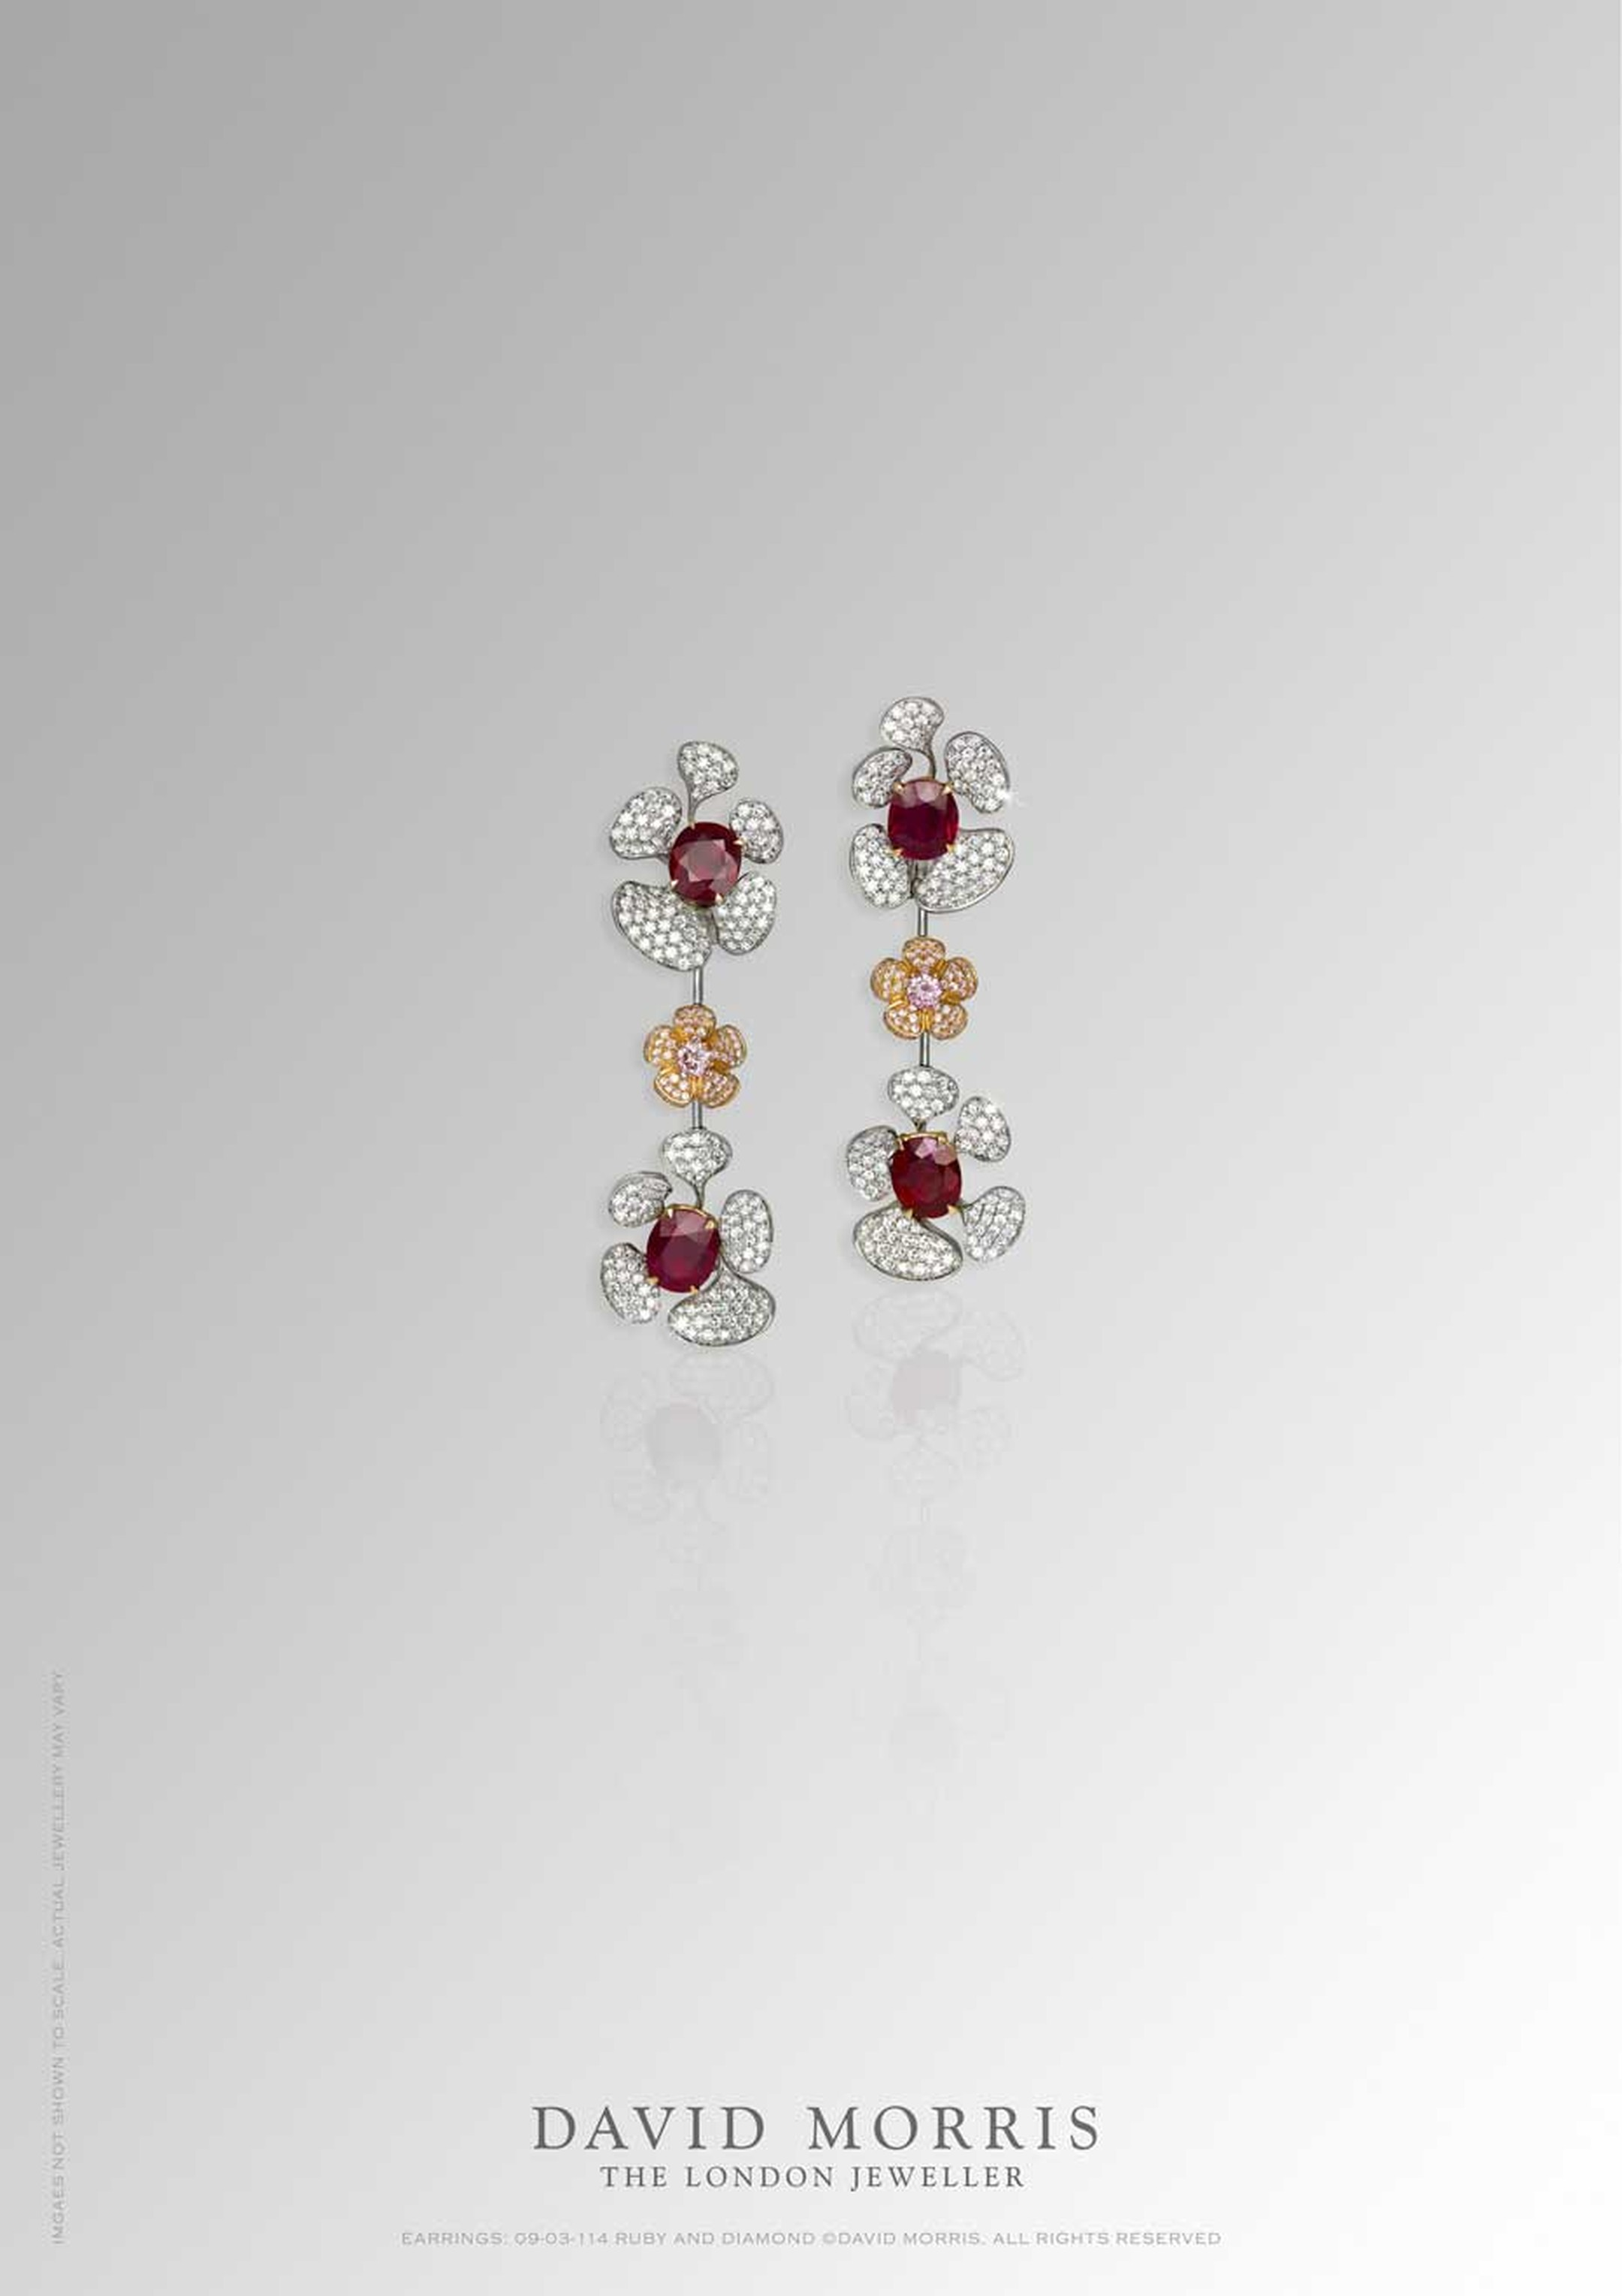 David Morris Wild Flower Burmese ruby earrings with white and pink diamonds, set with 14.37ct rubies.